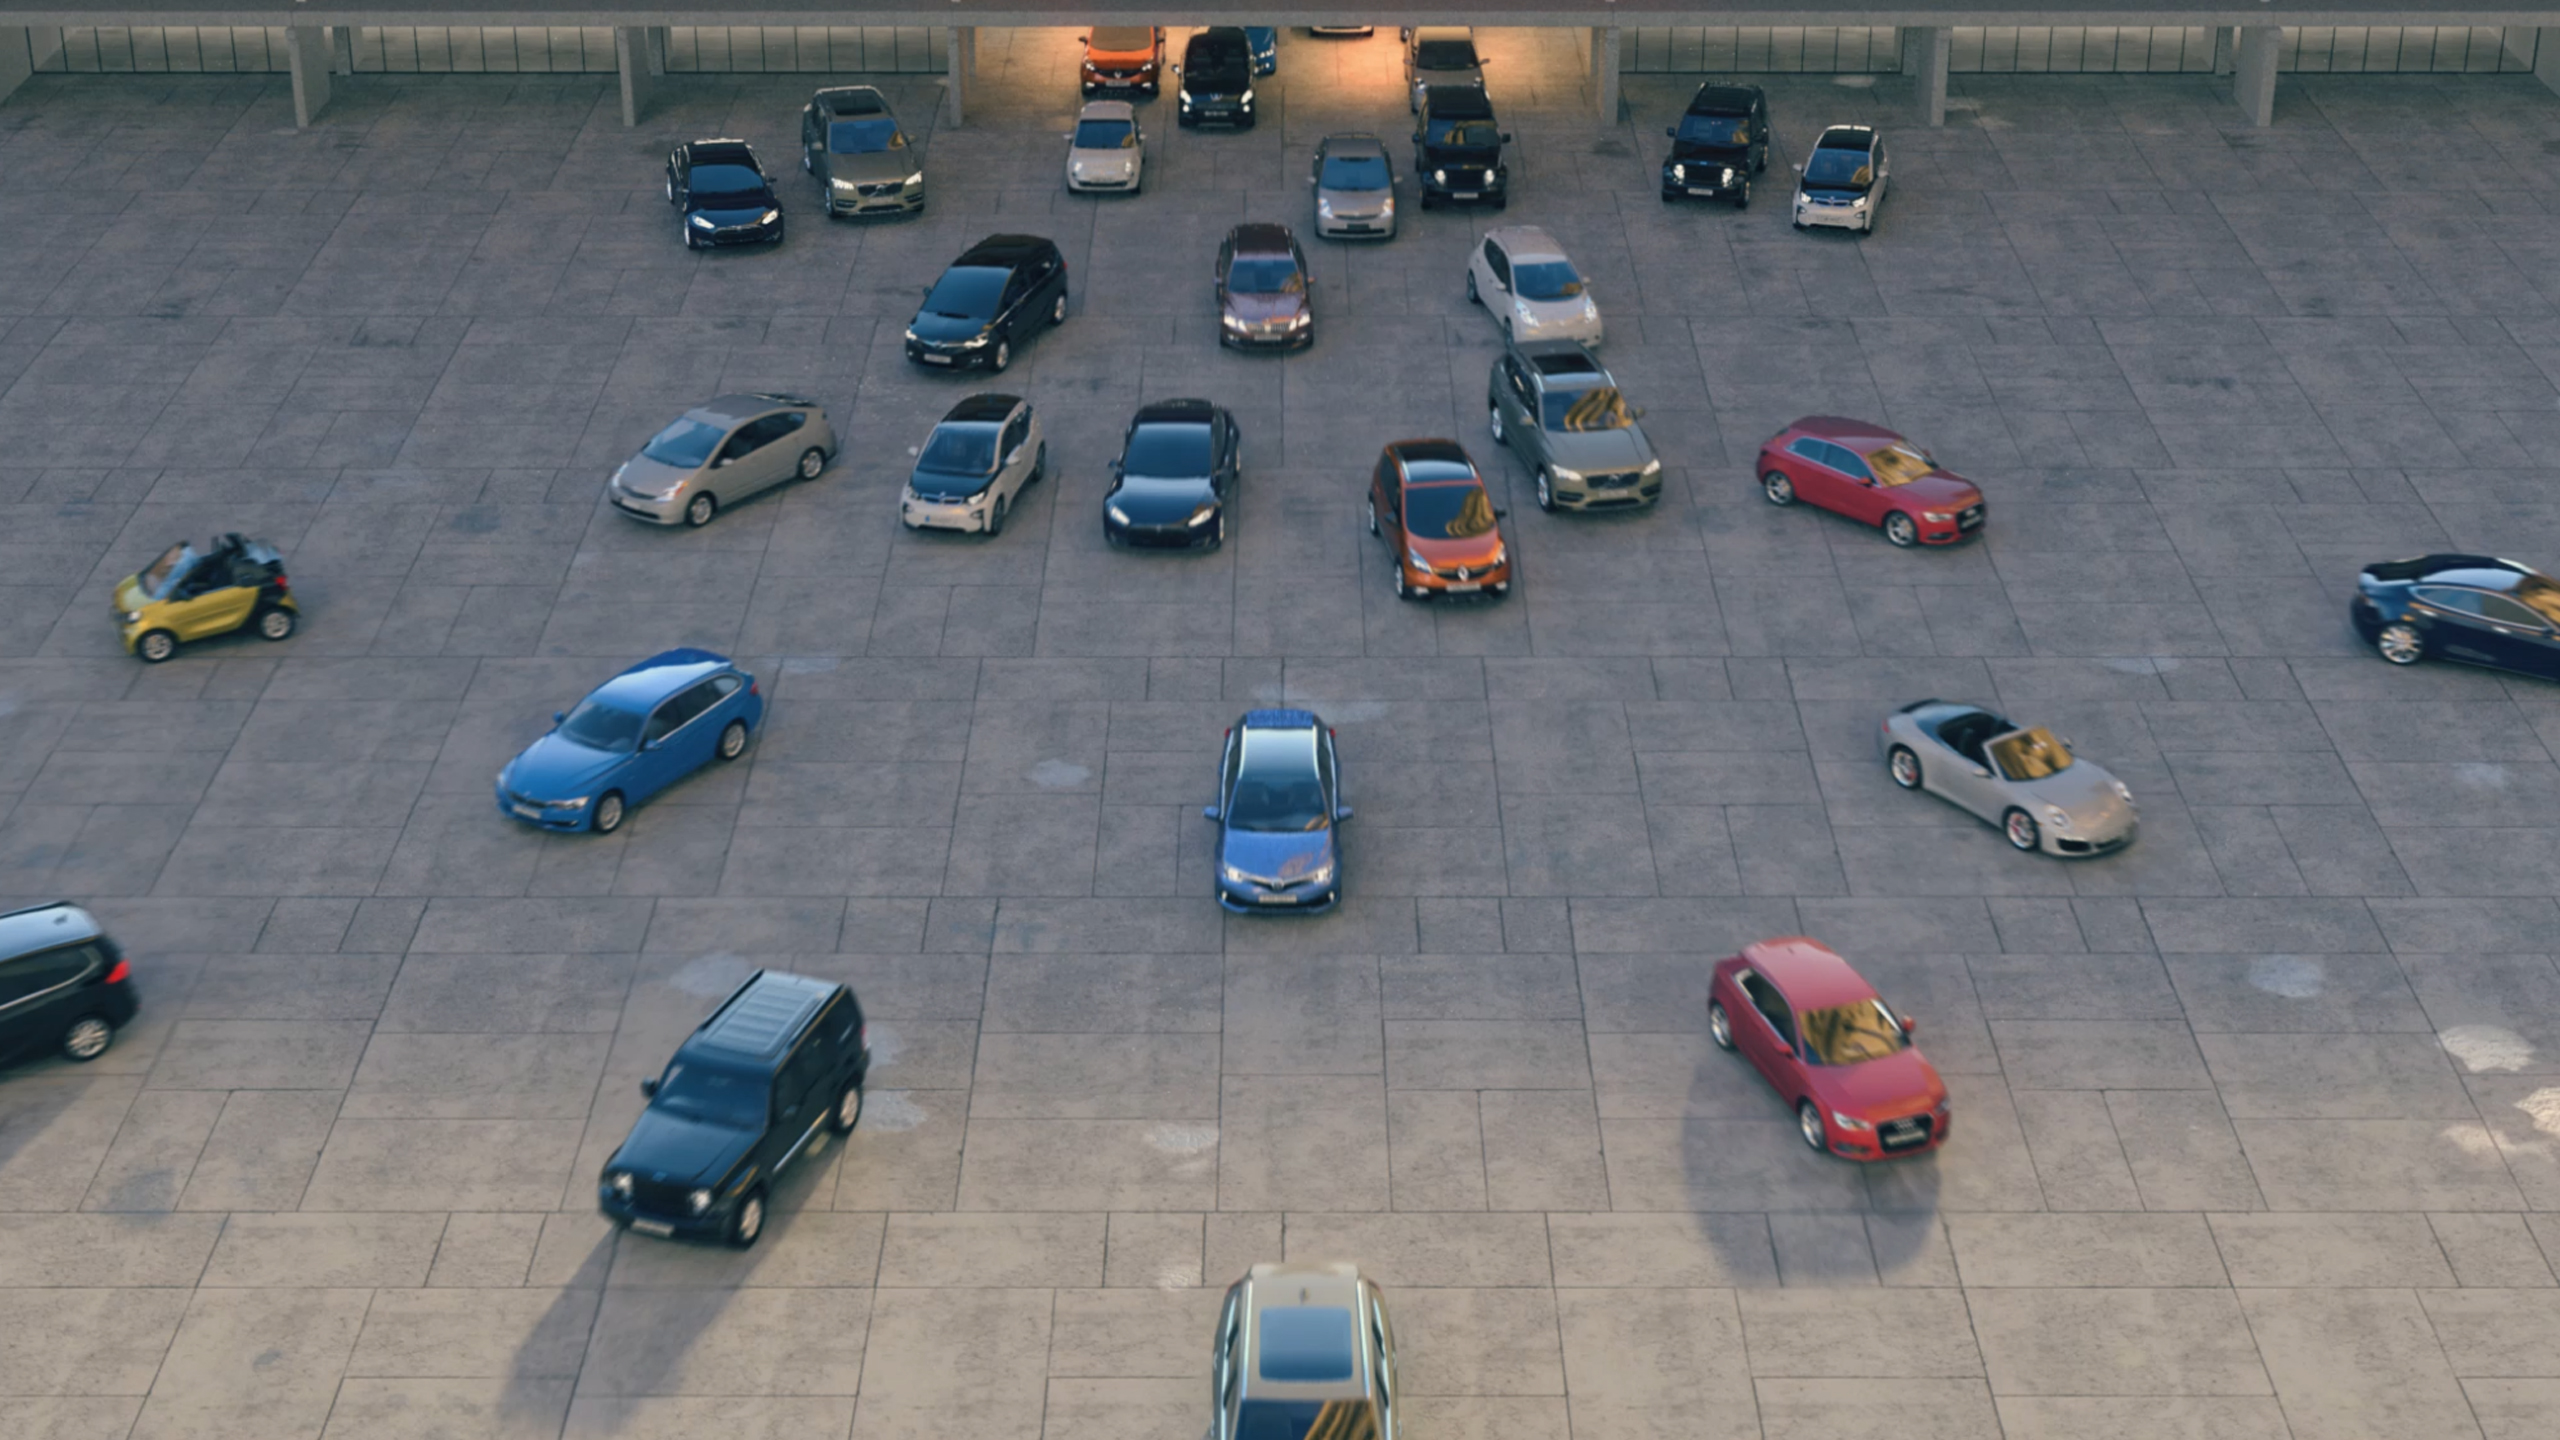 leaseplan-animation-3d-cgi-tvc-coloring-grading-modeling-texturing-grading-cars